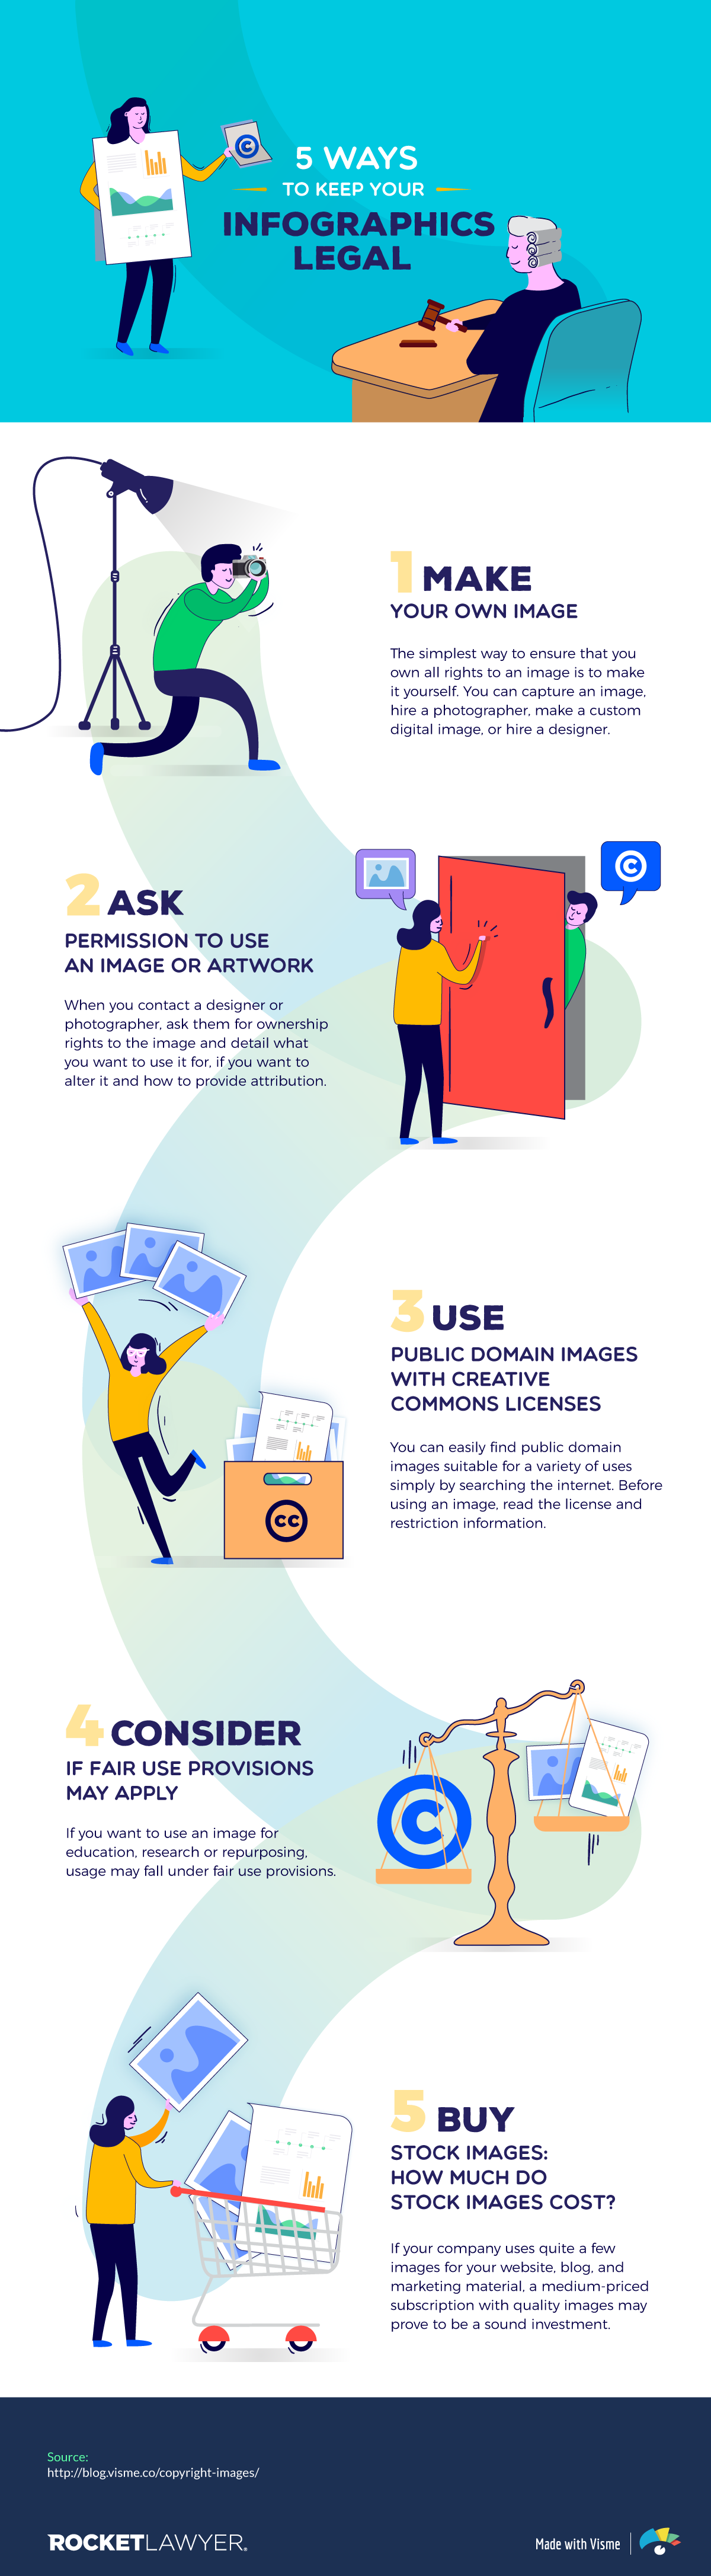 copyright images 5 Ways to Keep Your Infographics Legal